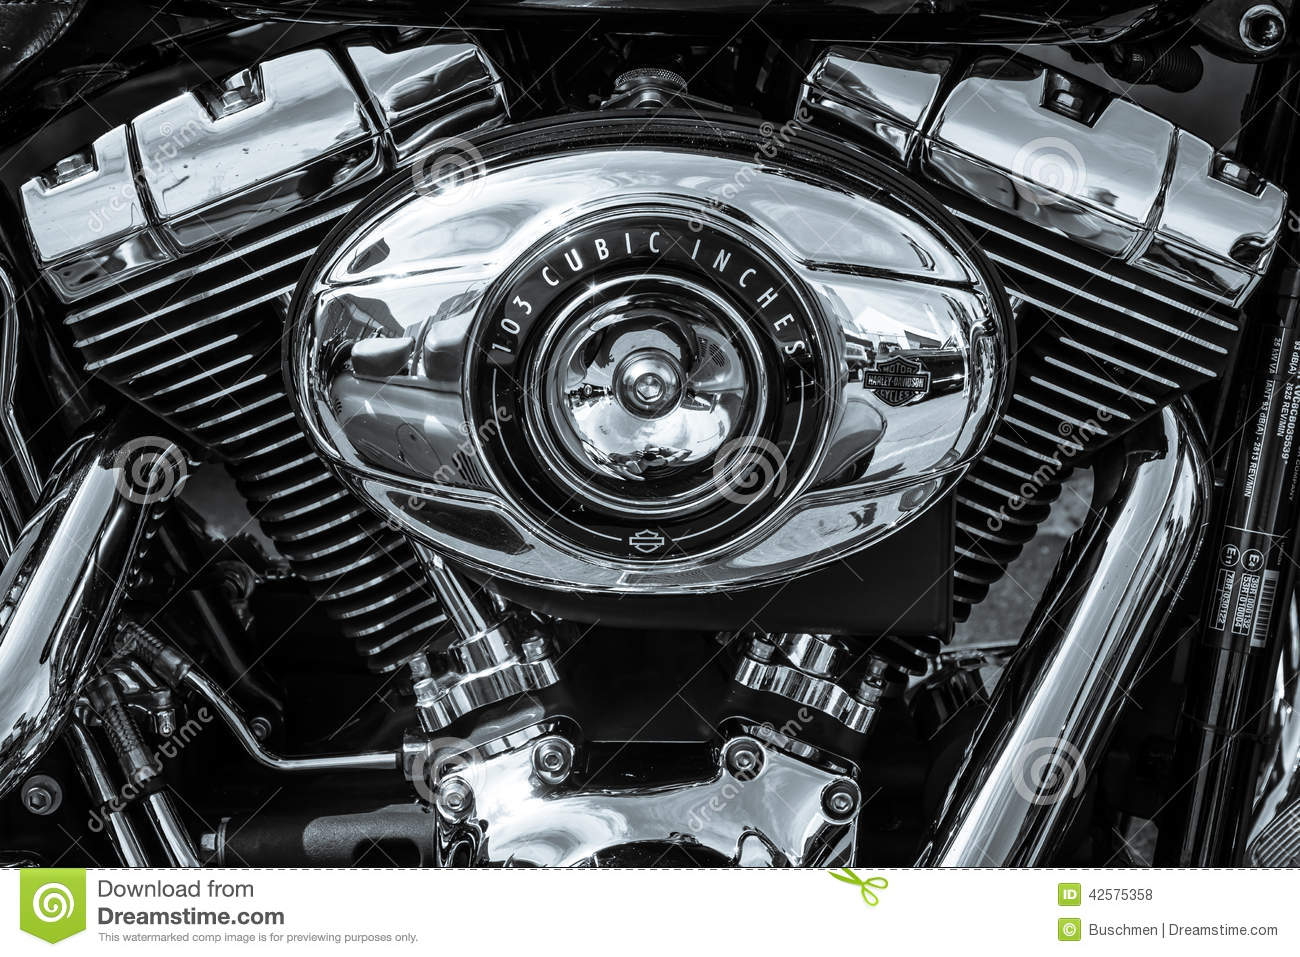 hight resolution of twin cam 103 engine closeup of motorcycle harley davidson softail